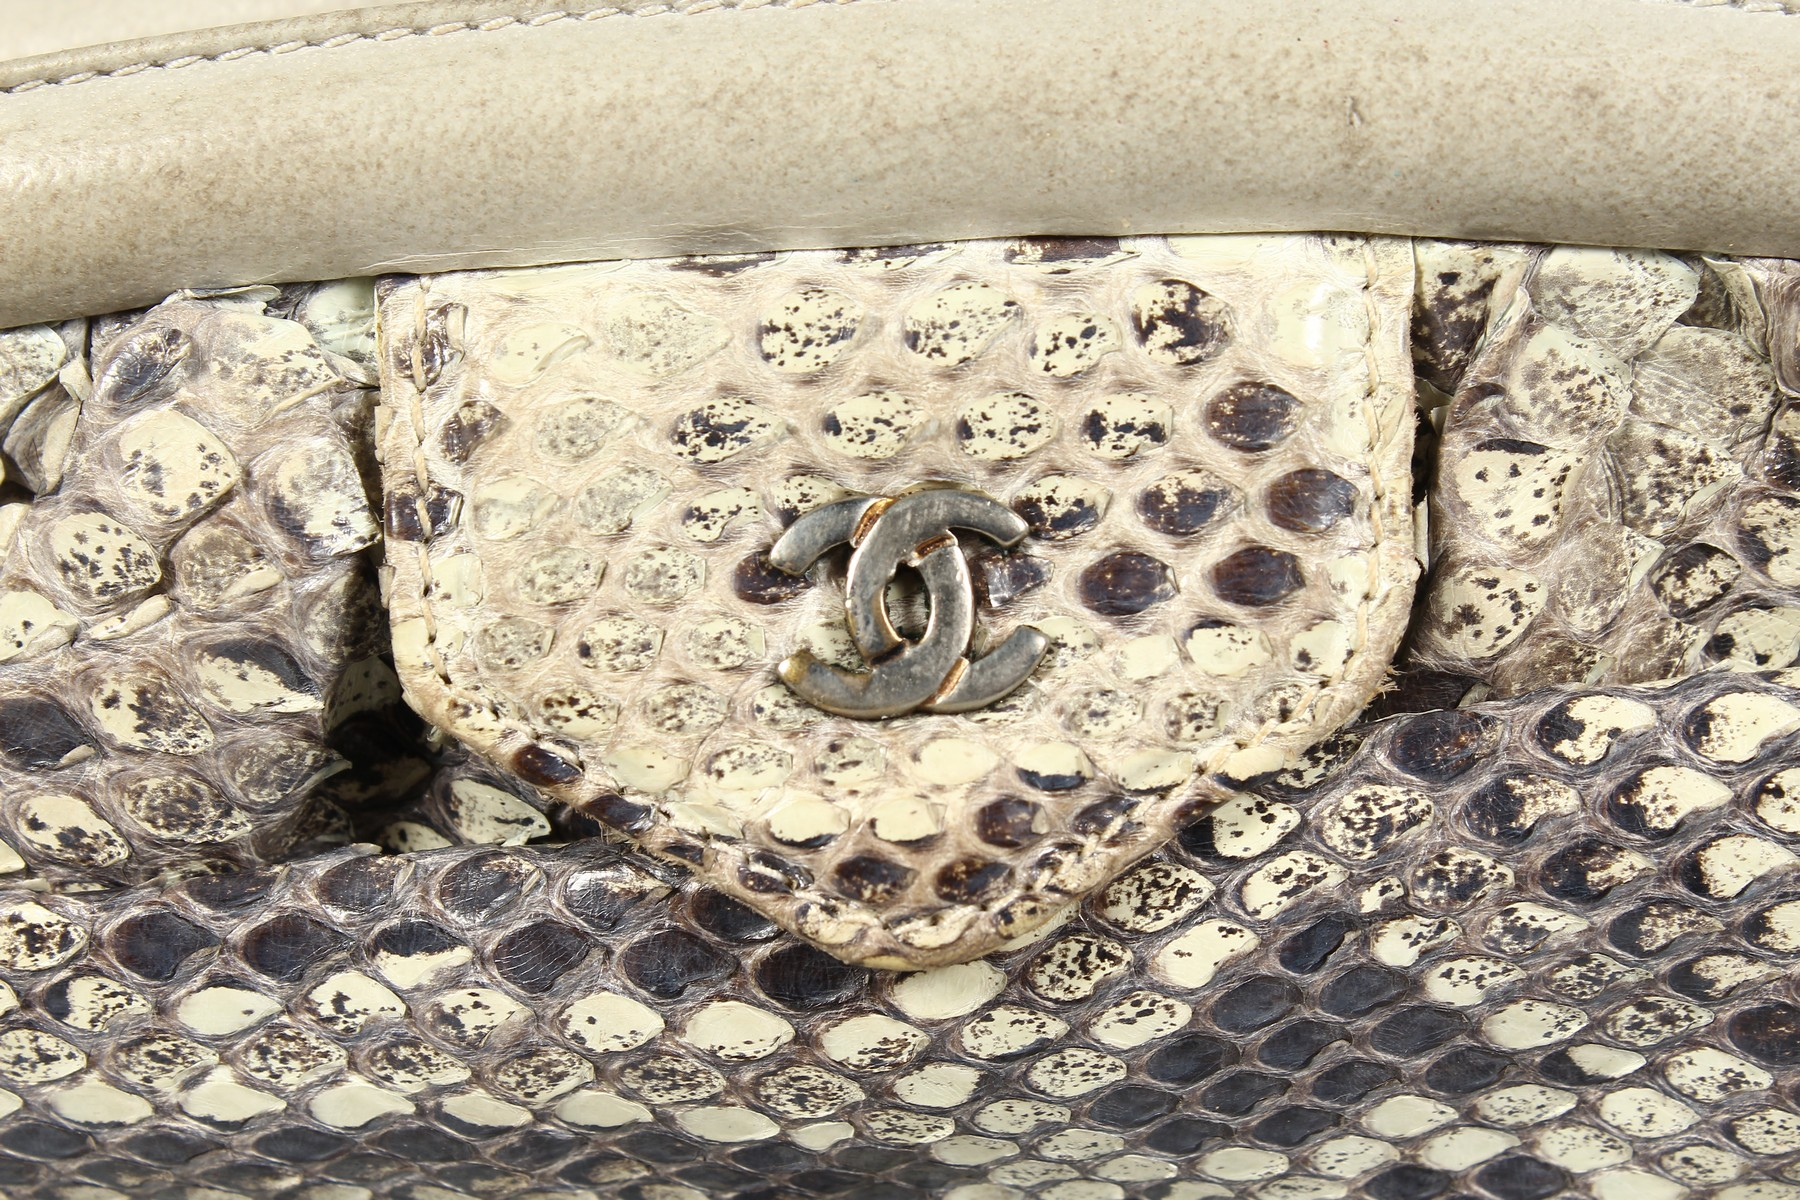 A CHANEL SNAKESKIN BAG with leather interior. Made in Italy. 11ins long. - Image 2 of 9